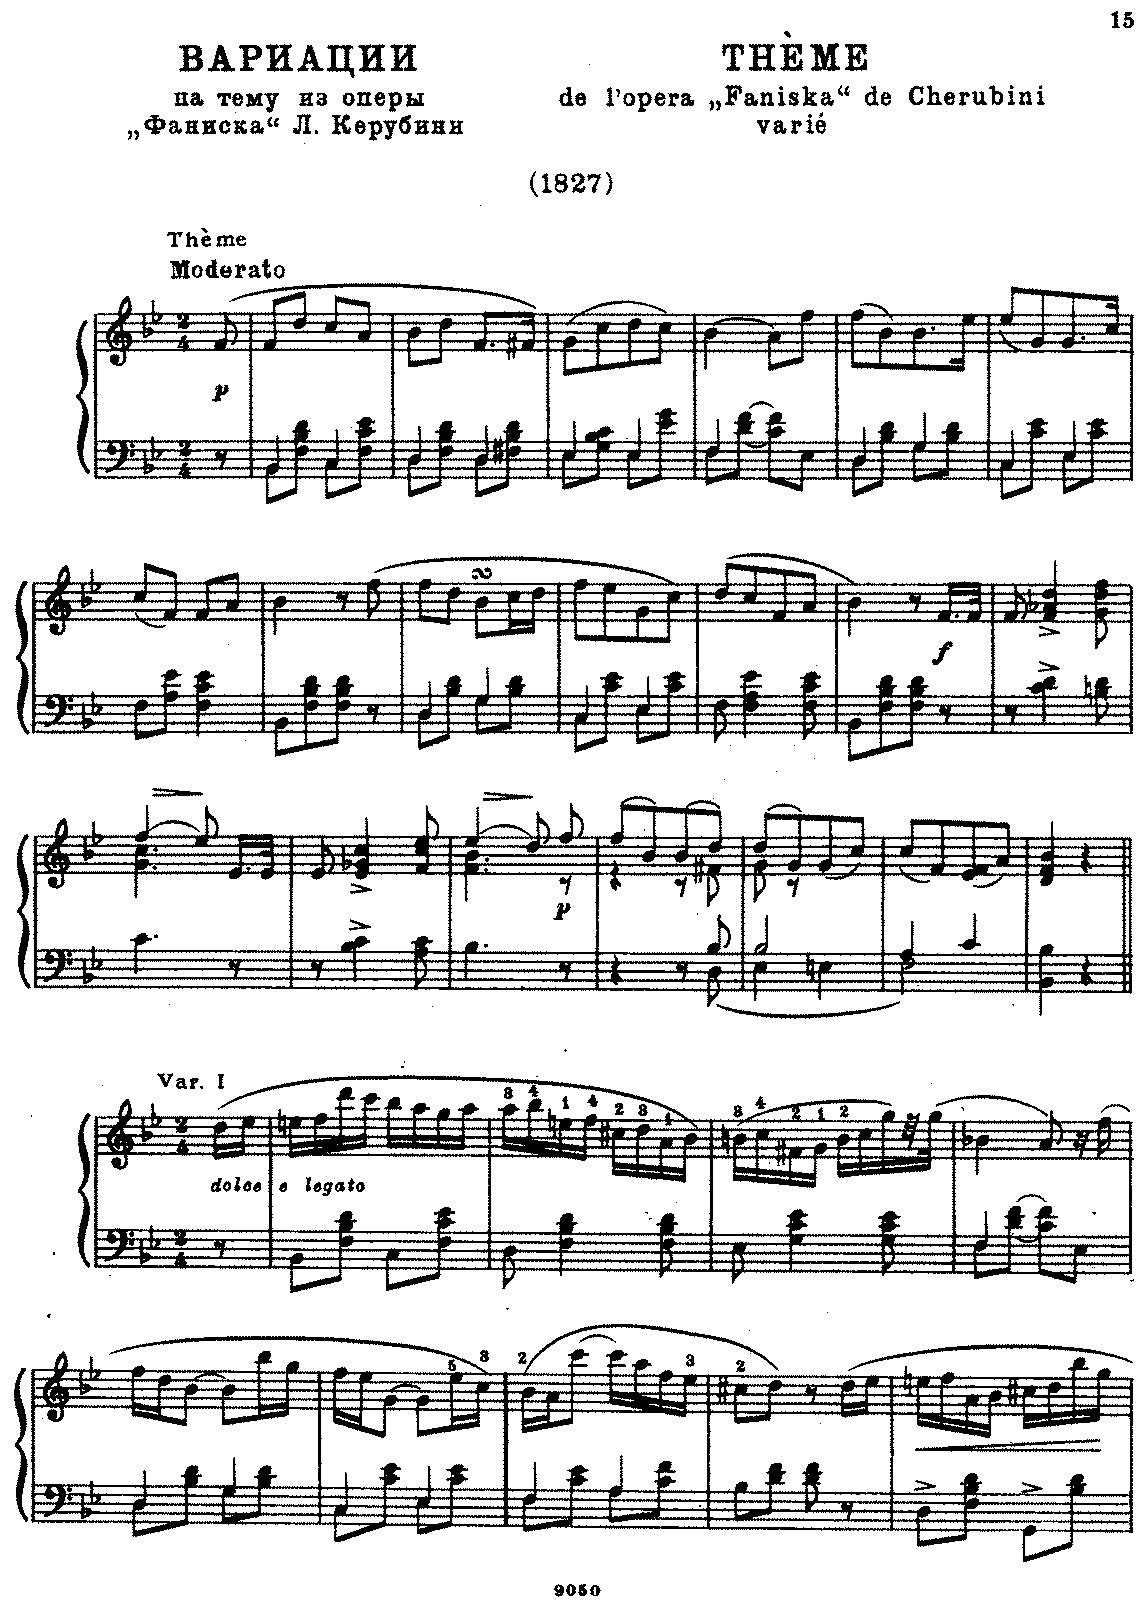 Glinka - Variations in B Major on a Theme from Cherubini's Opera Faniska.pdf